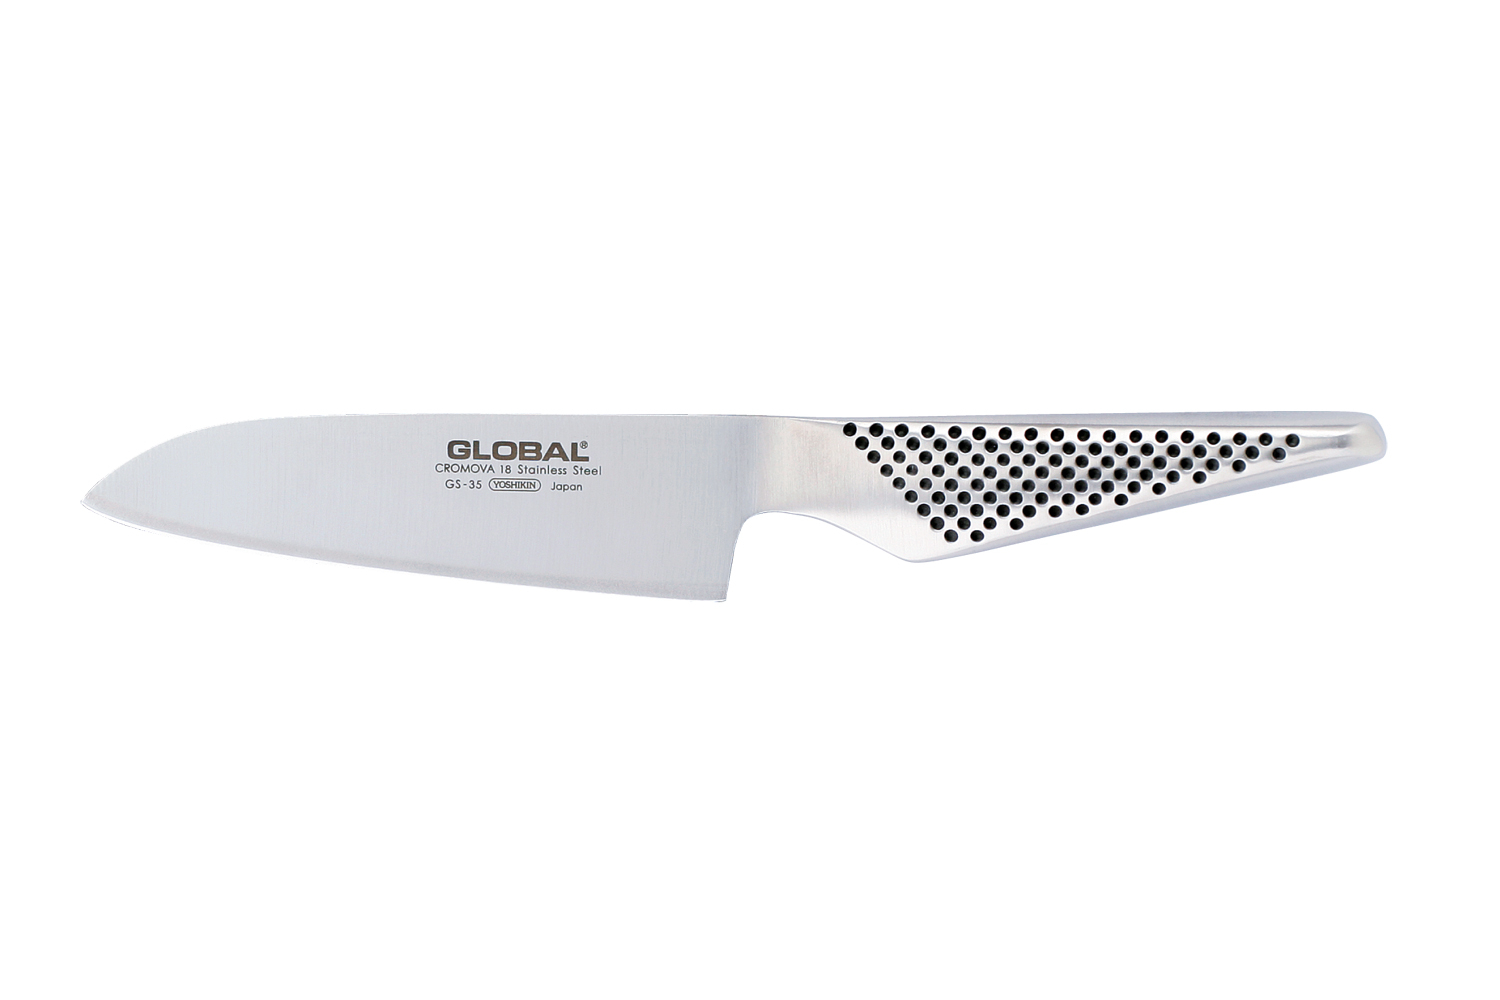 Global 5 1/4 inch Santoku Chef's Knife